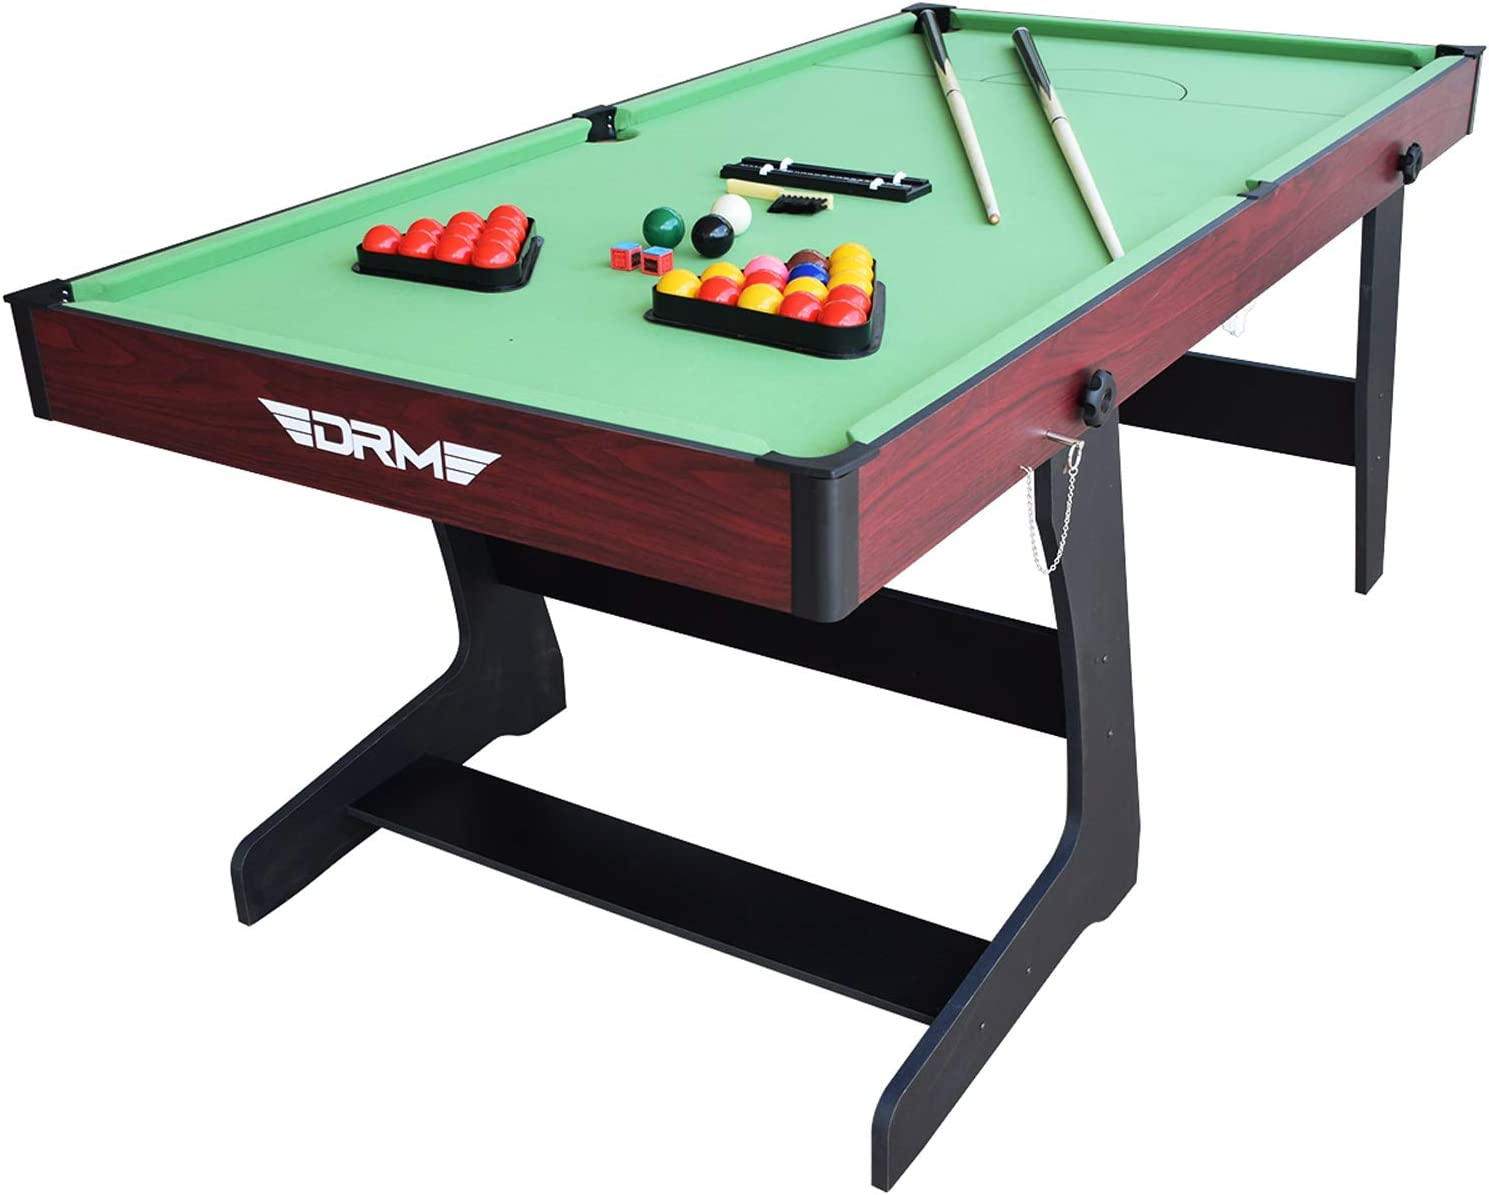 DRM 6FT Folding Snooker//Pool Table Space Saving Billiards Table With Balls And Other Accessories